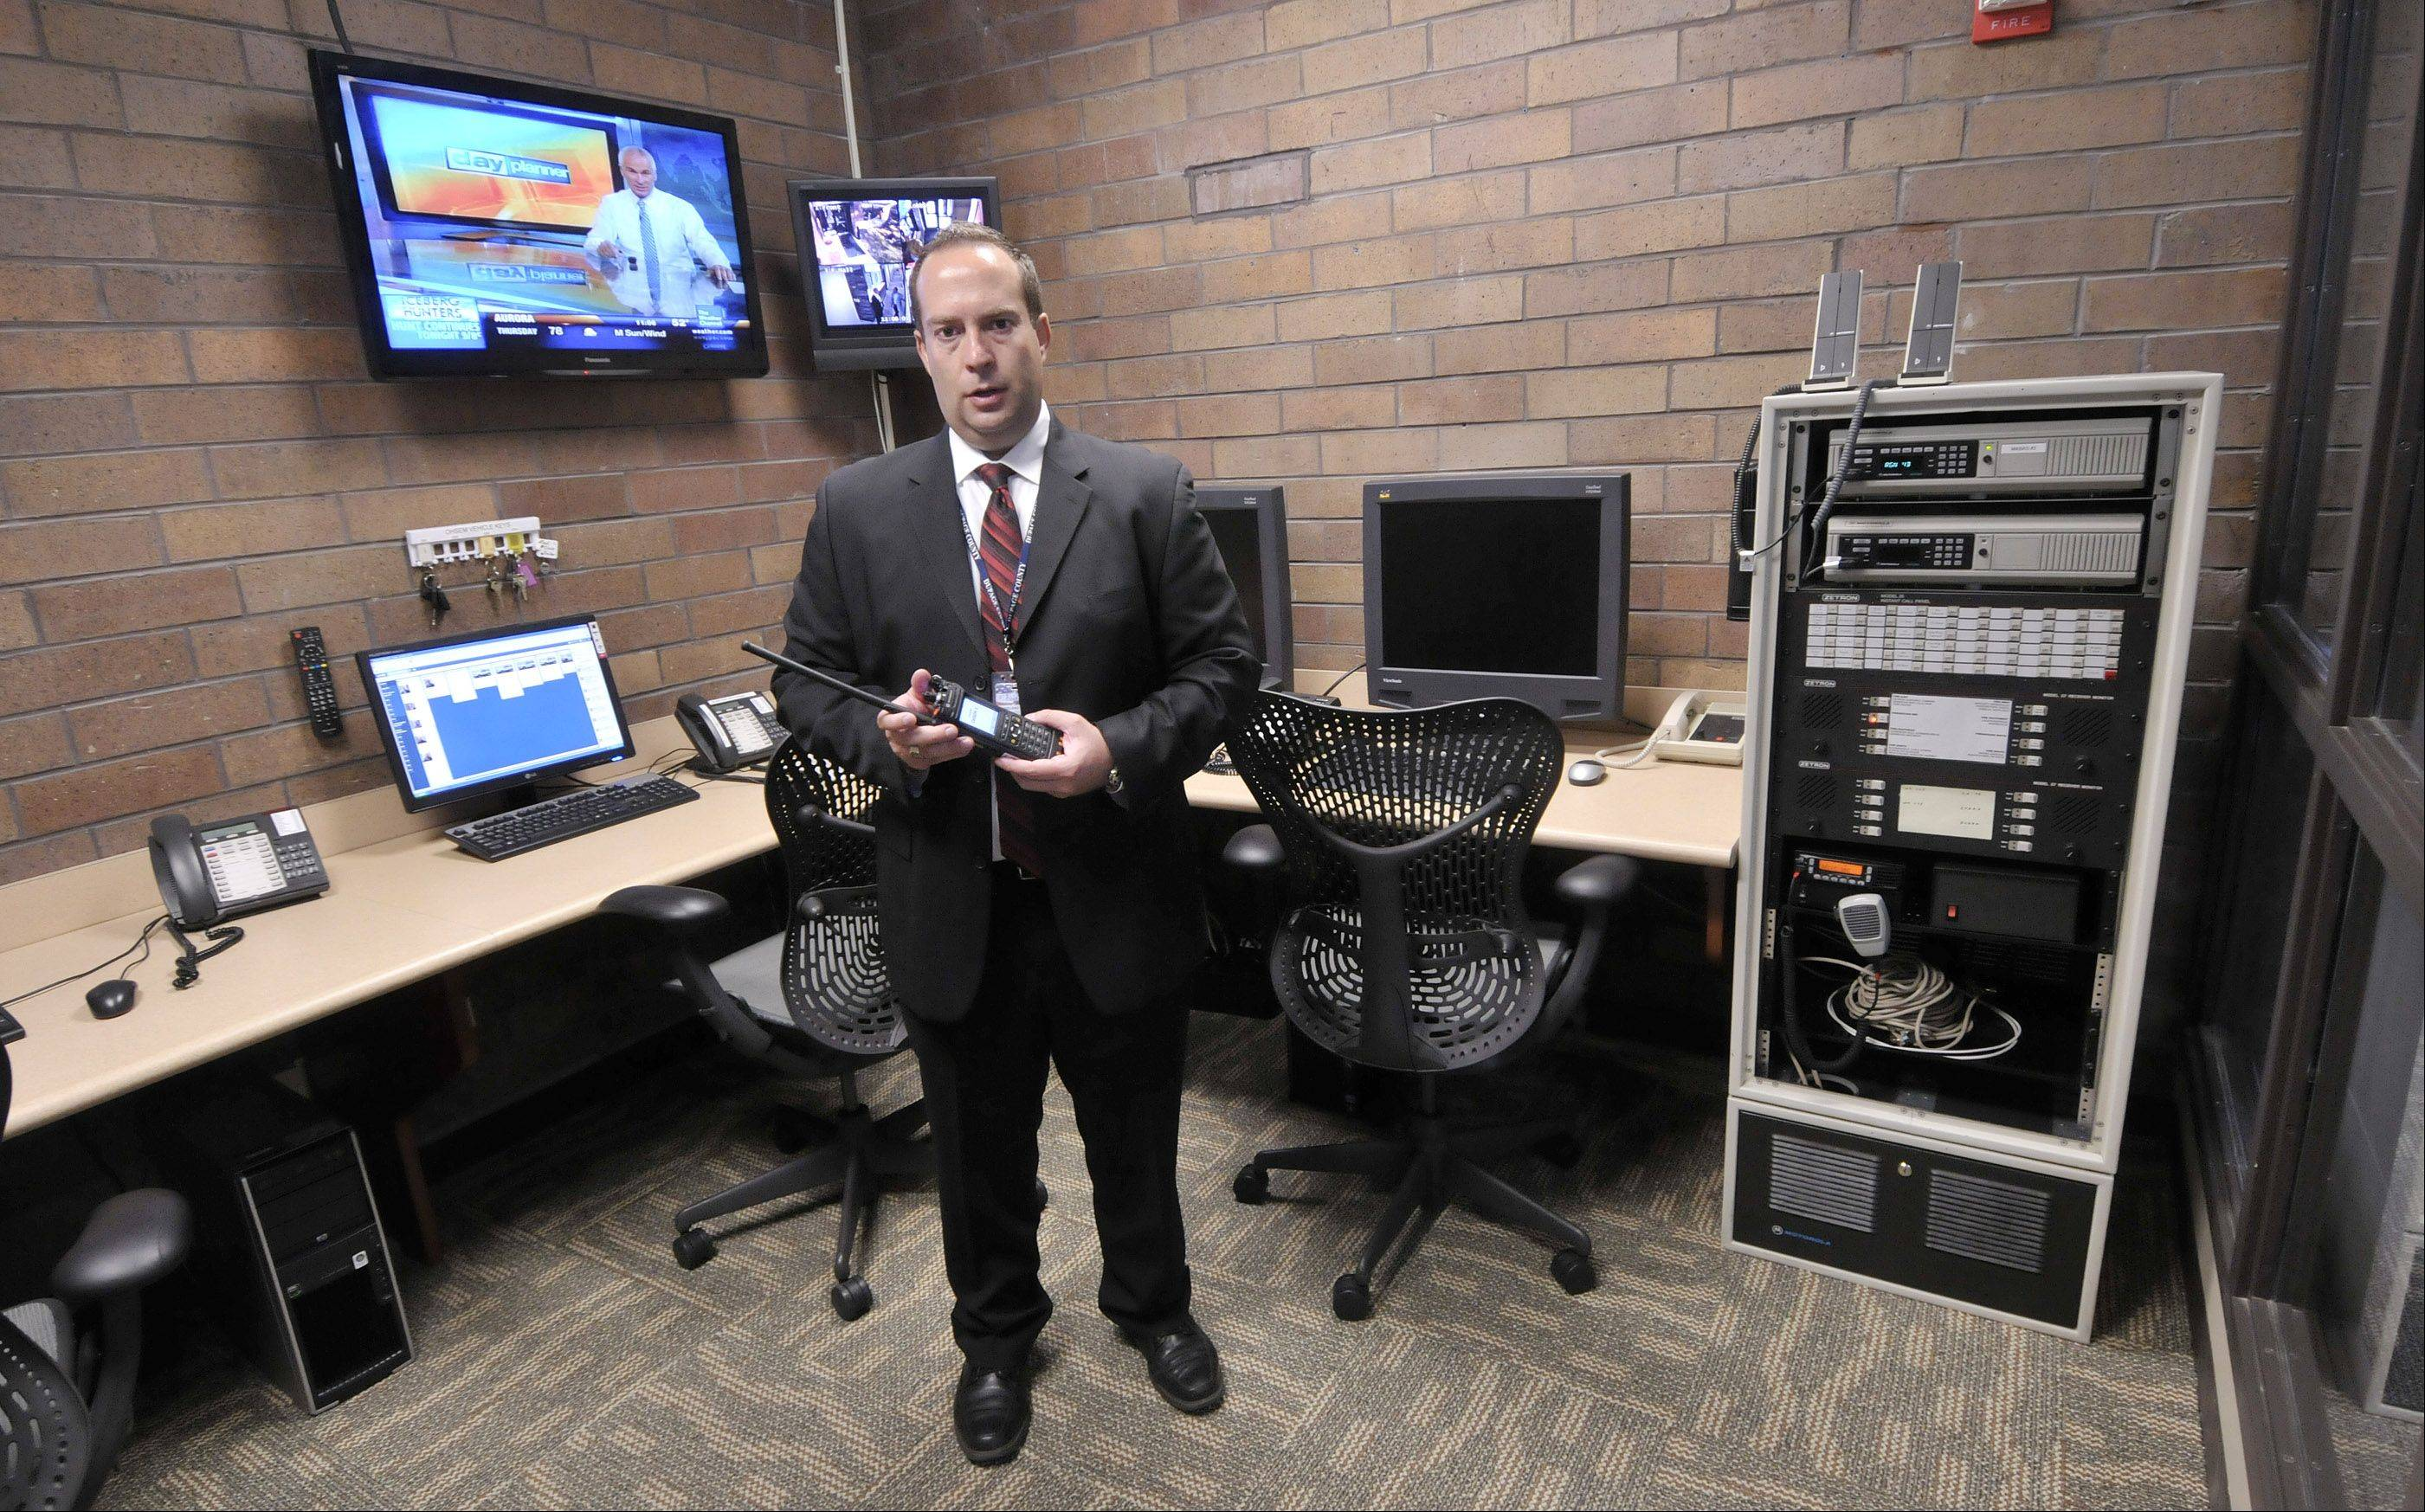 David Gervino, emergency management coordinator for DuPage County's Office of Homeland Security and Emergency Management, talks about radio capabilities of the new emergency operations center. In the radio room, county officials can communicate with police and fire departments throughout the state to coordinate the response to big emergencies.